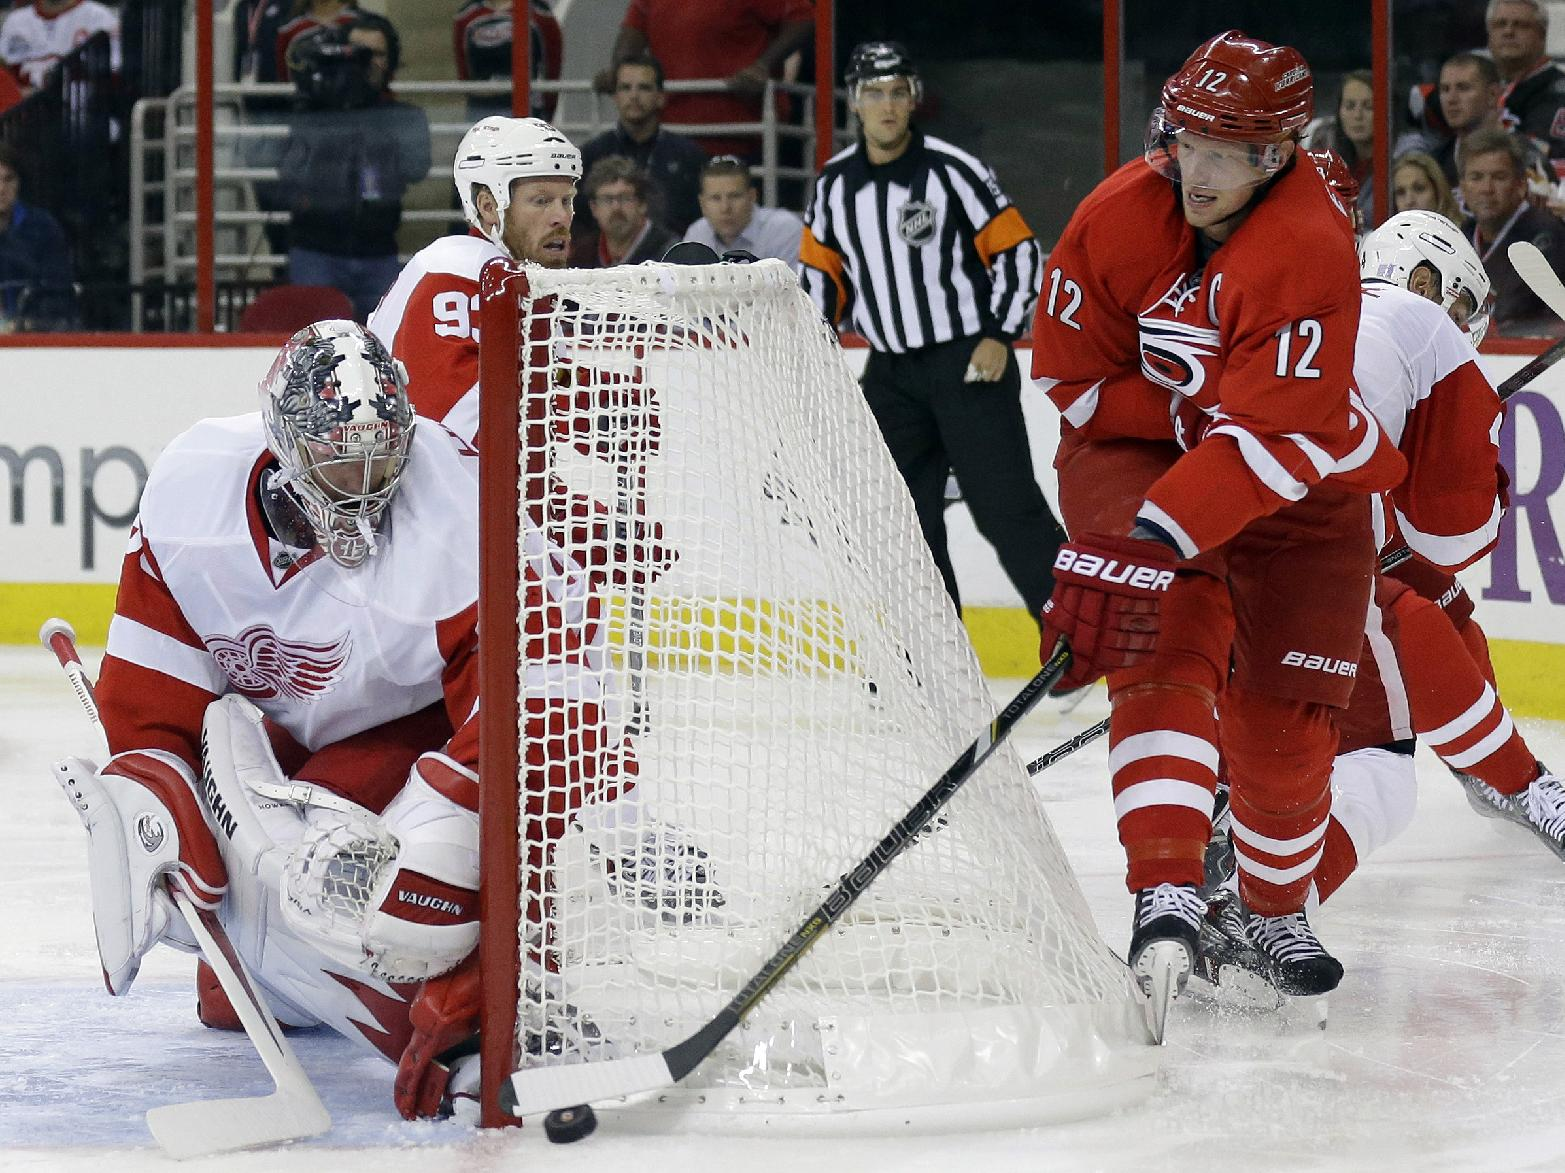 Detroit Red Wings goalie Jimmy Howard, left, defends the goal against Carolina Hurricanes' Eric Staal (12) during the second period of an NHL hockey game in Raleigh, N.C., Friday, Oct. 4, 2013